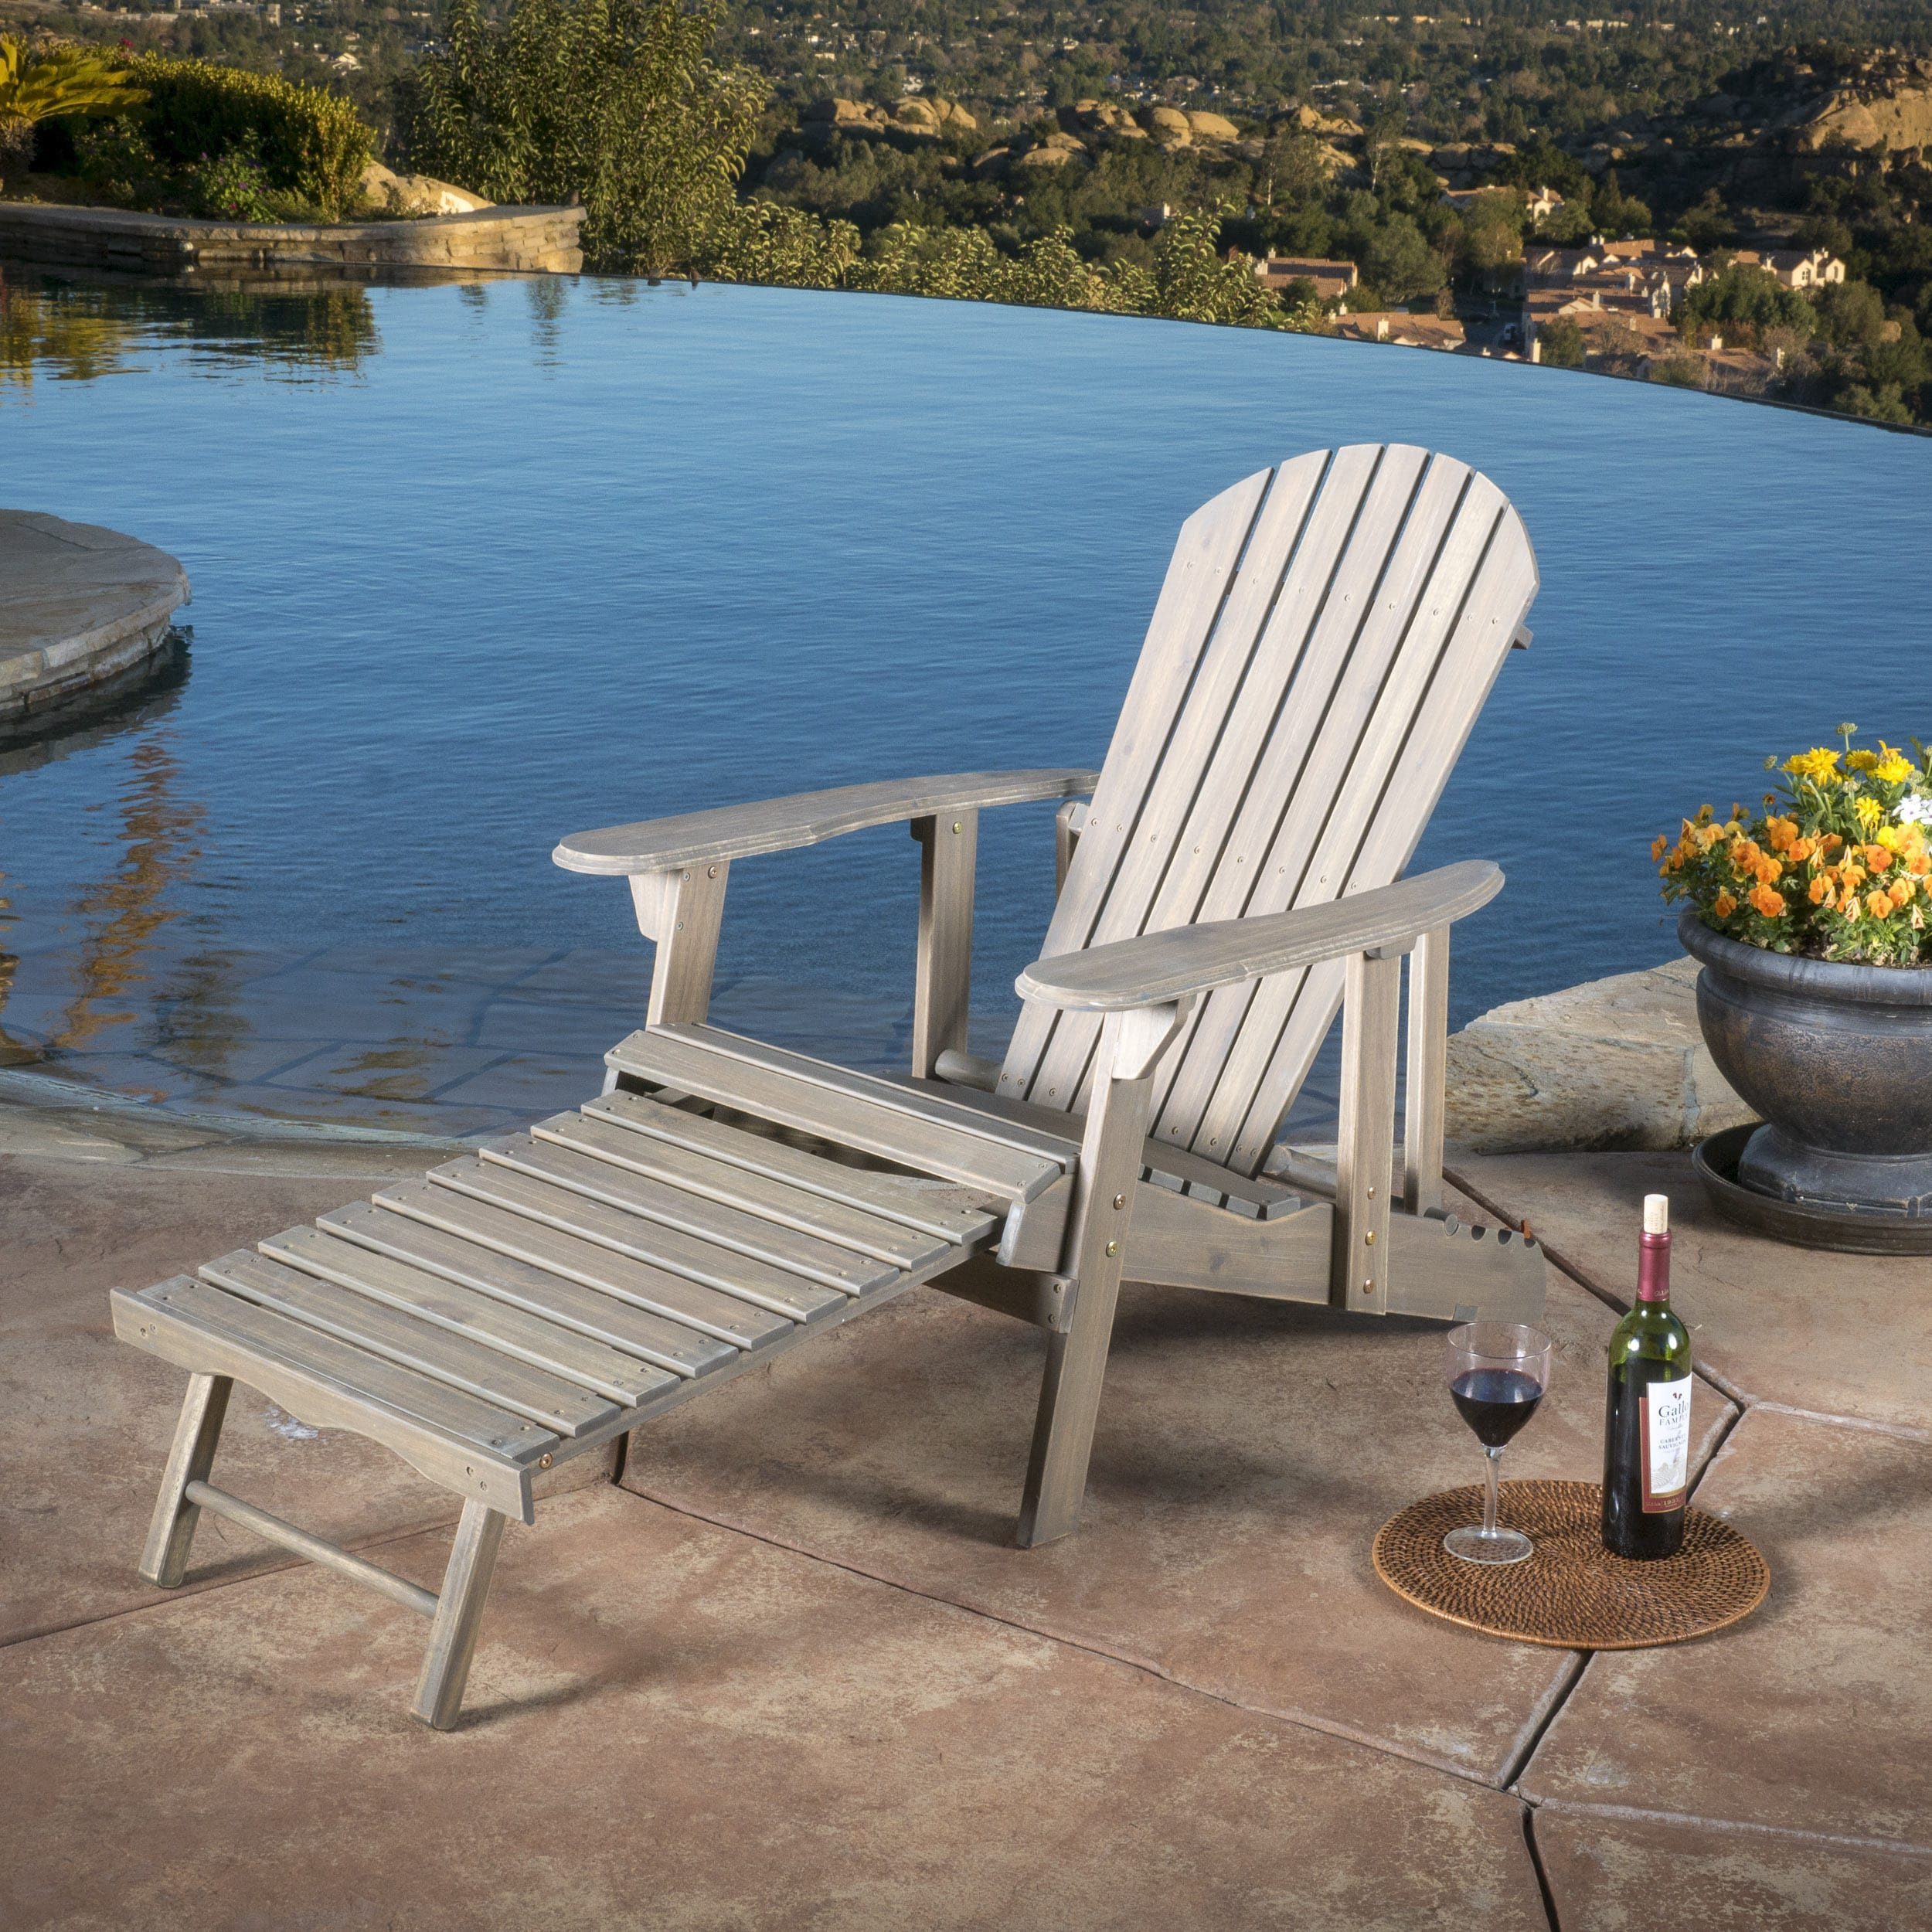 Outdoor Reclining Chair Hayle Outdoor Reclining Wood Adirondack Chair With